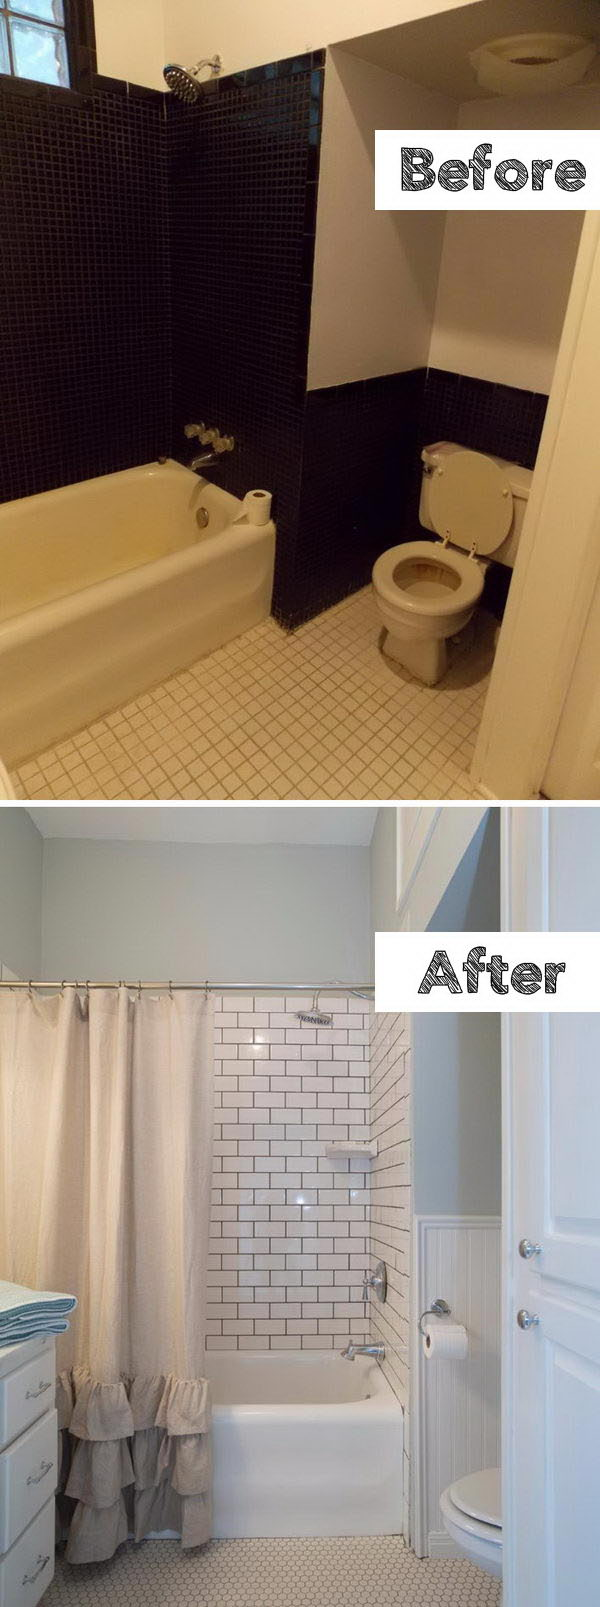 Install Subway Tiles Just Around The Tub and Paint Around The Bathroom.